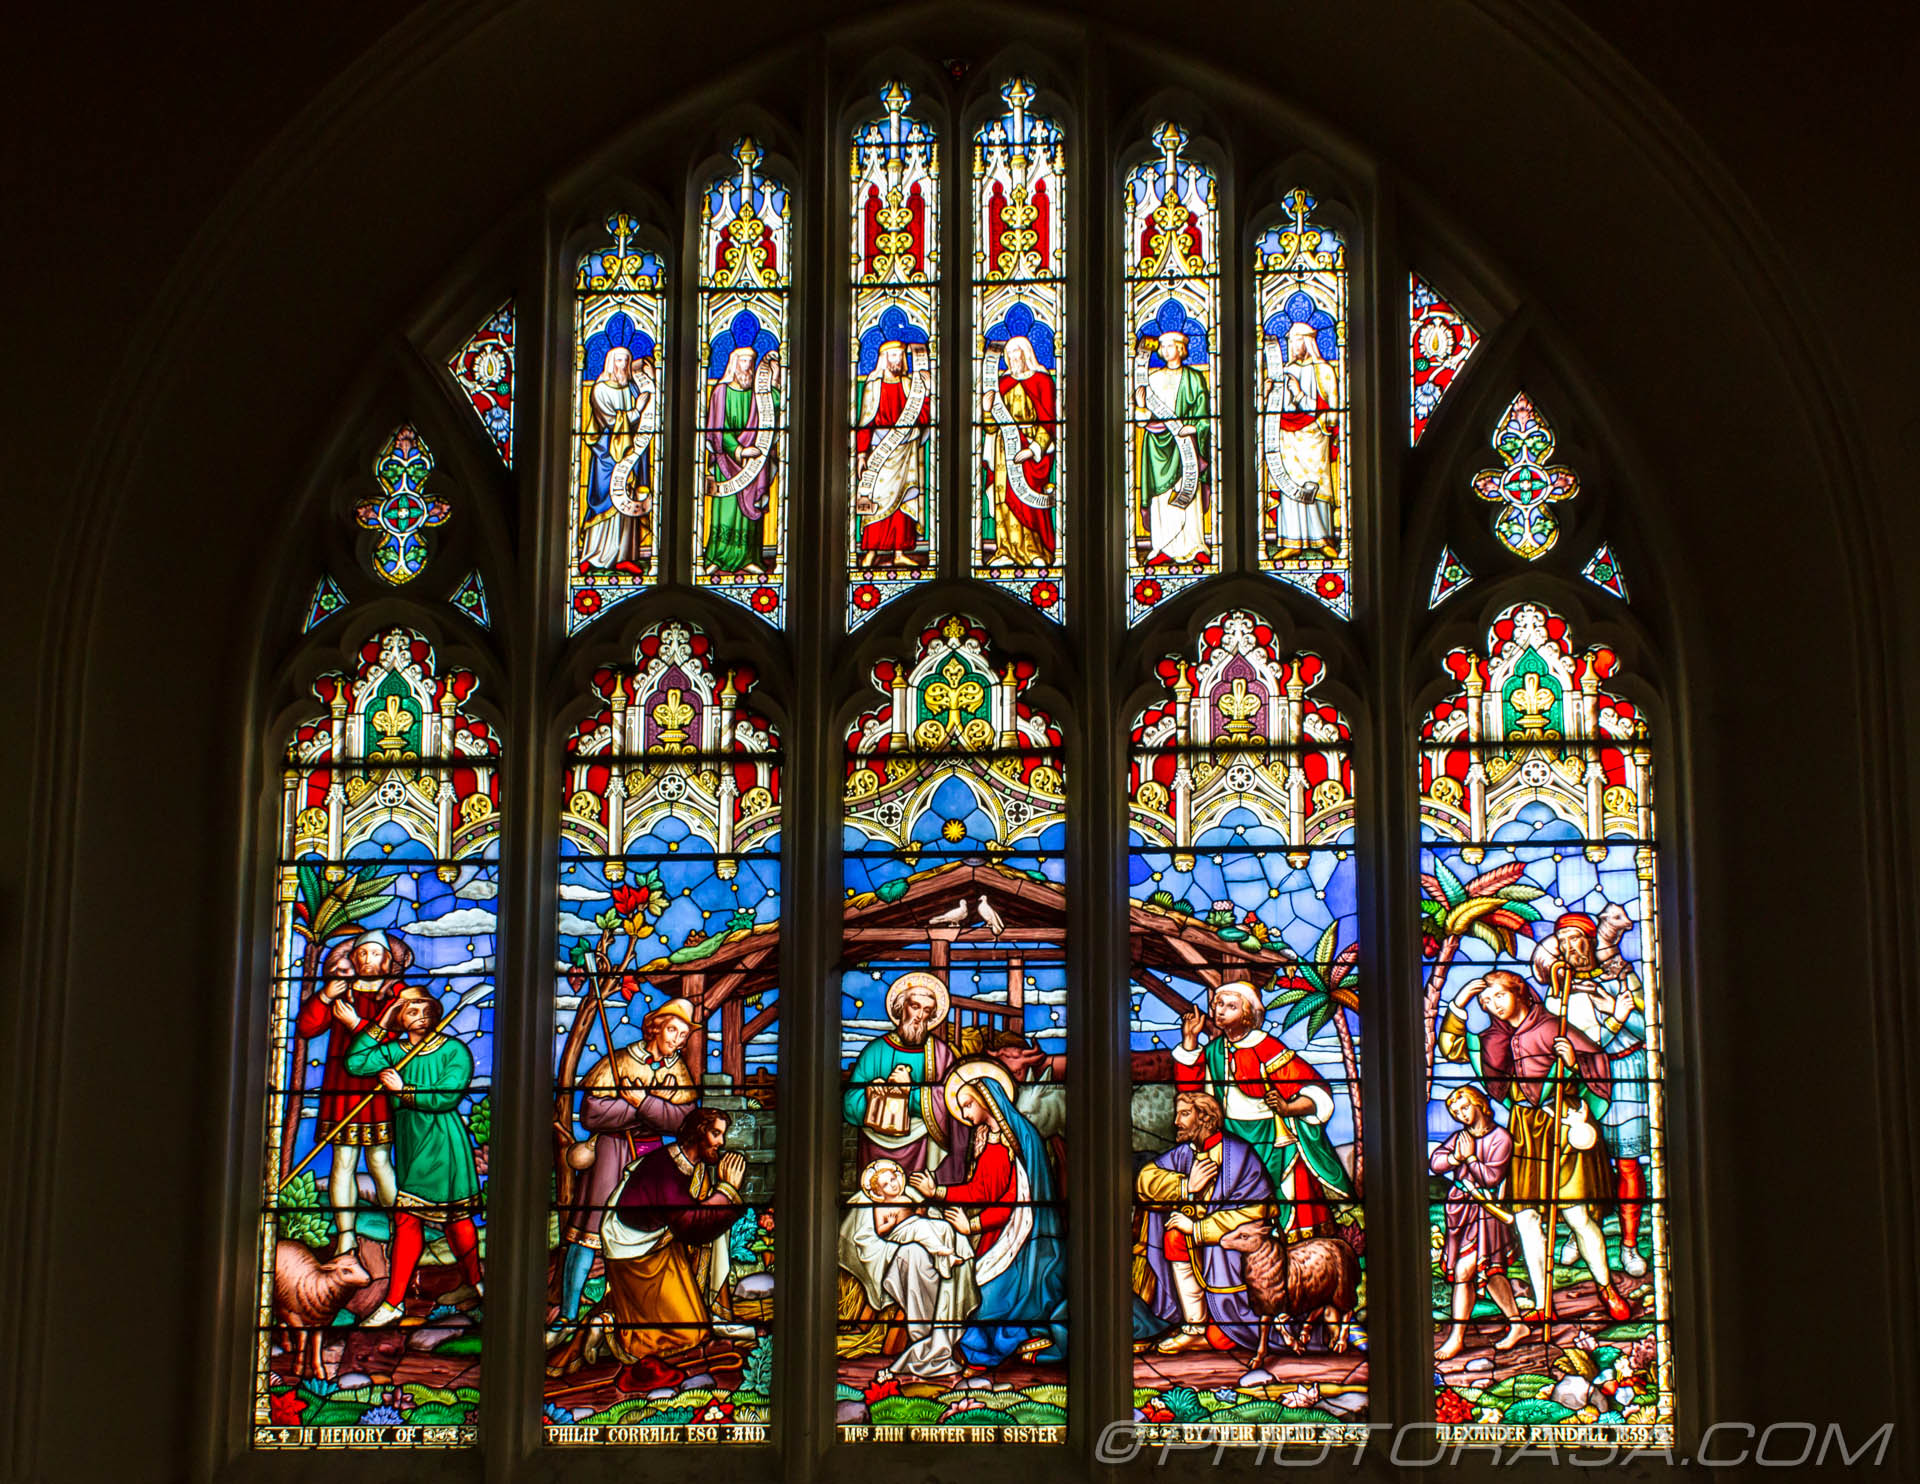 https://photorasa.com/inside-all-saints-church-in-maidstone/stained-glass-of-the-birth-of-christ-and-nativity/